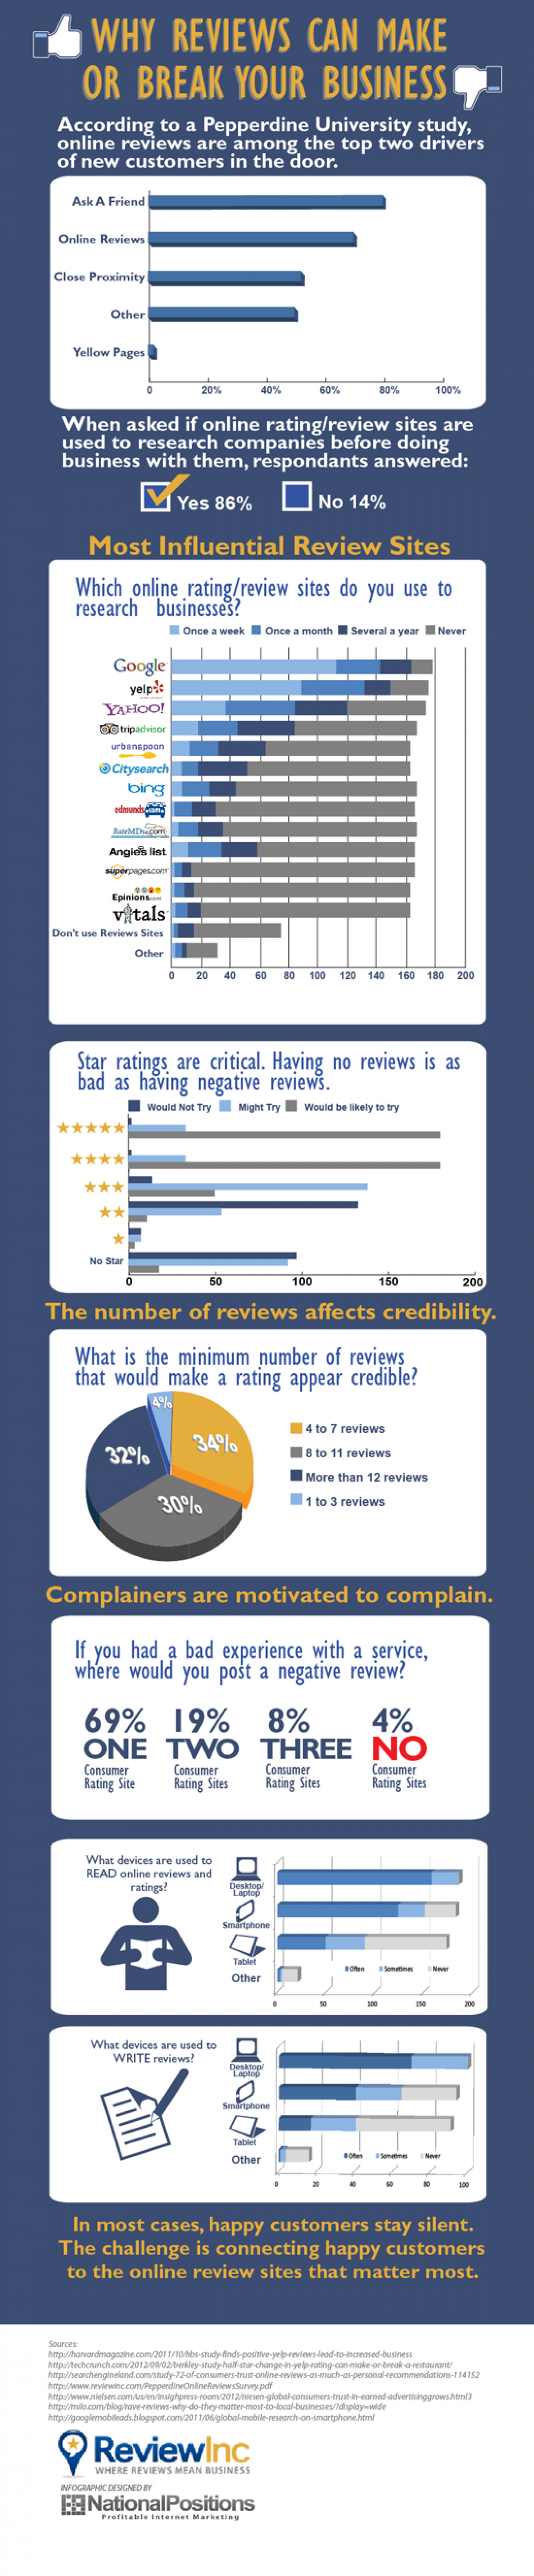 Why Reviews Can Make Or Break Your Business Infographic